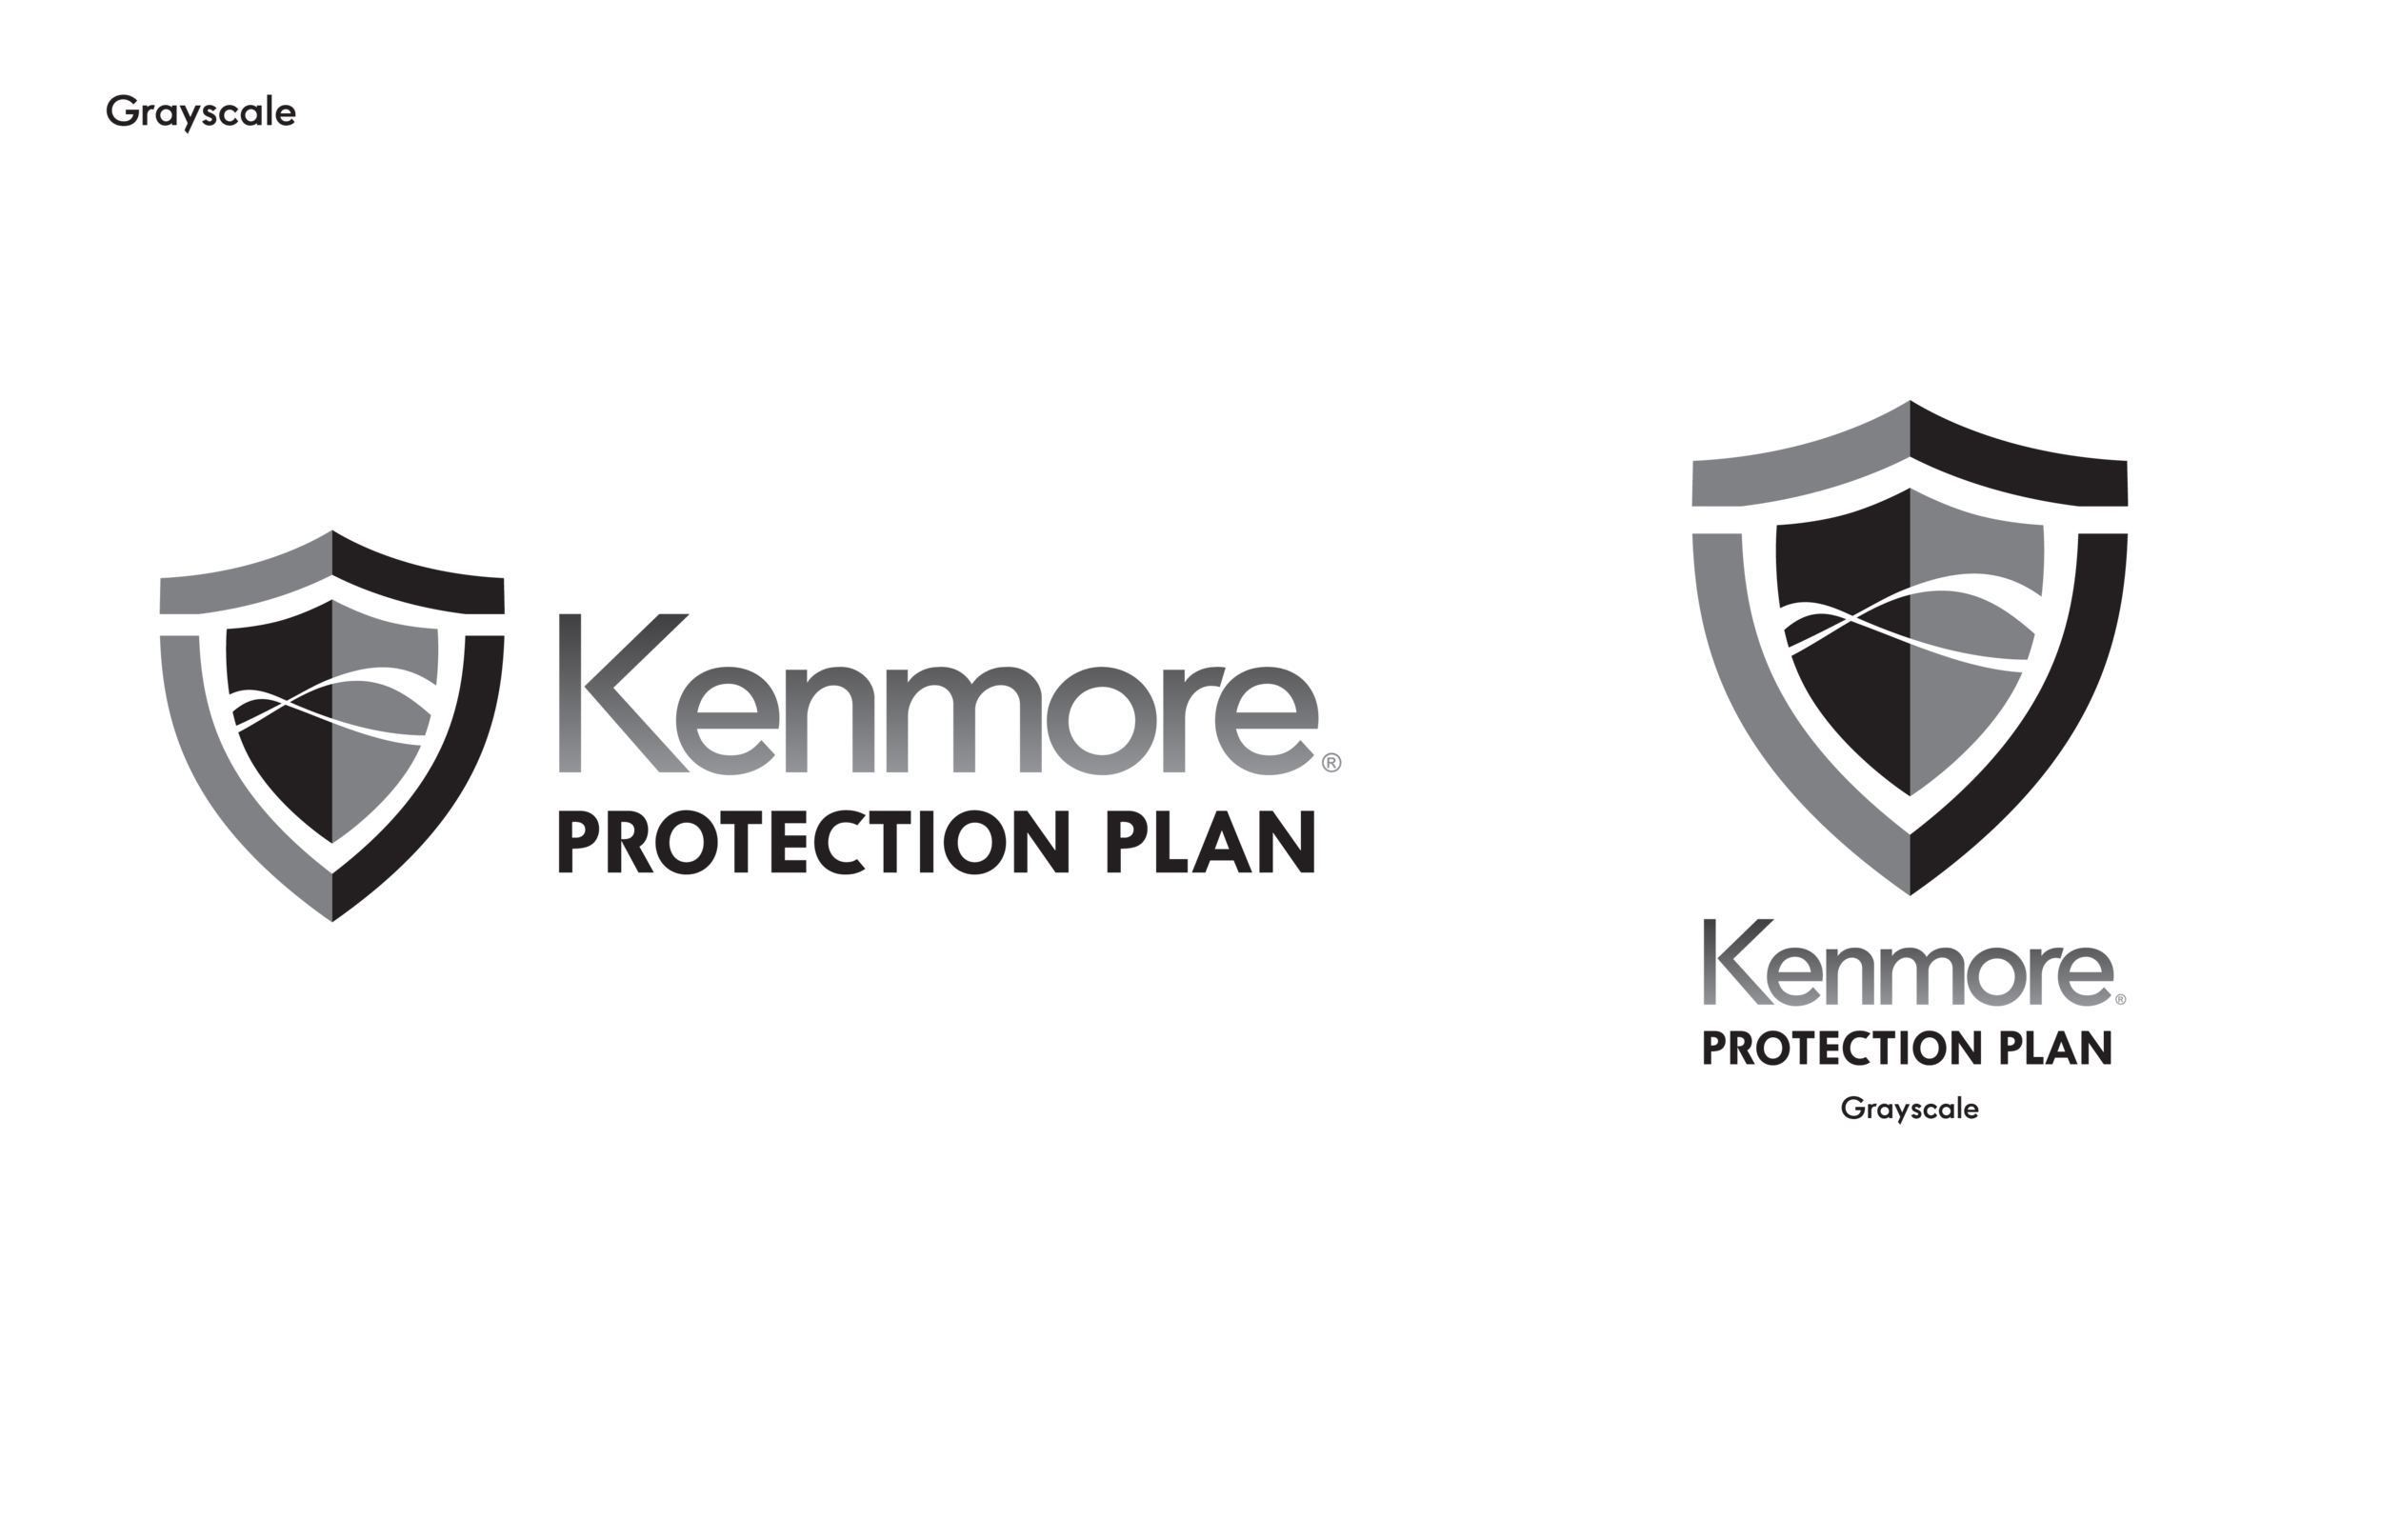 Kenmore_Protection_logo_Logo_Grayscale.png